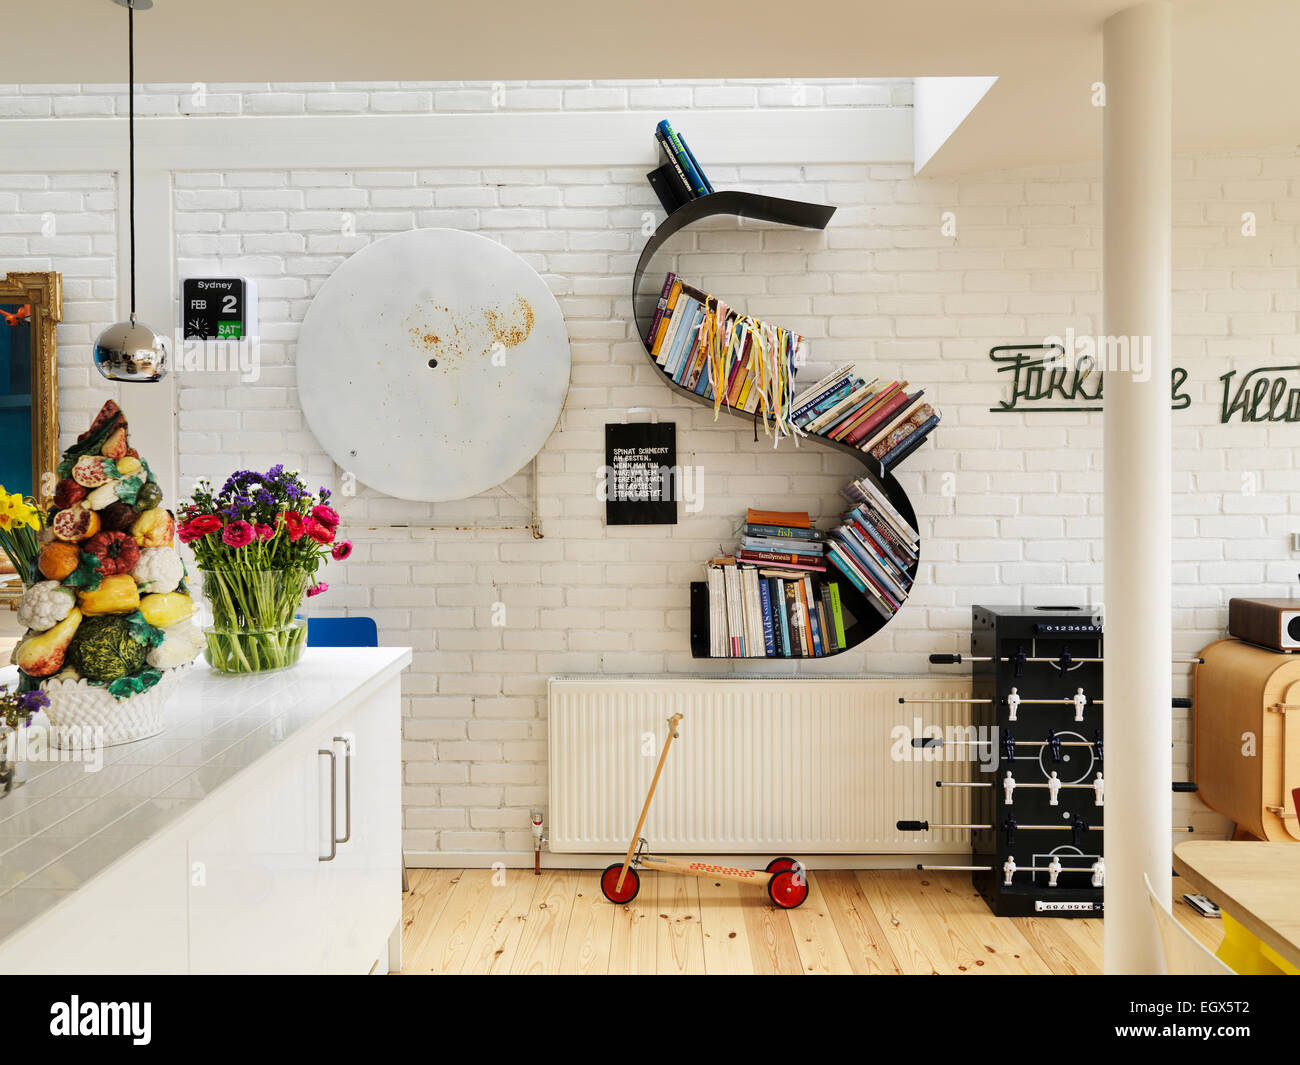 Kitchen With White Painted Brick Wall And Skylight Uk Home Stock Photo Alamy